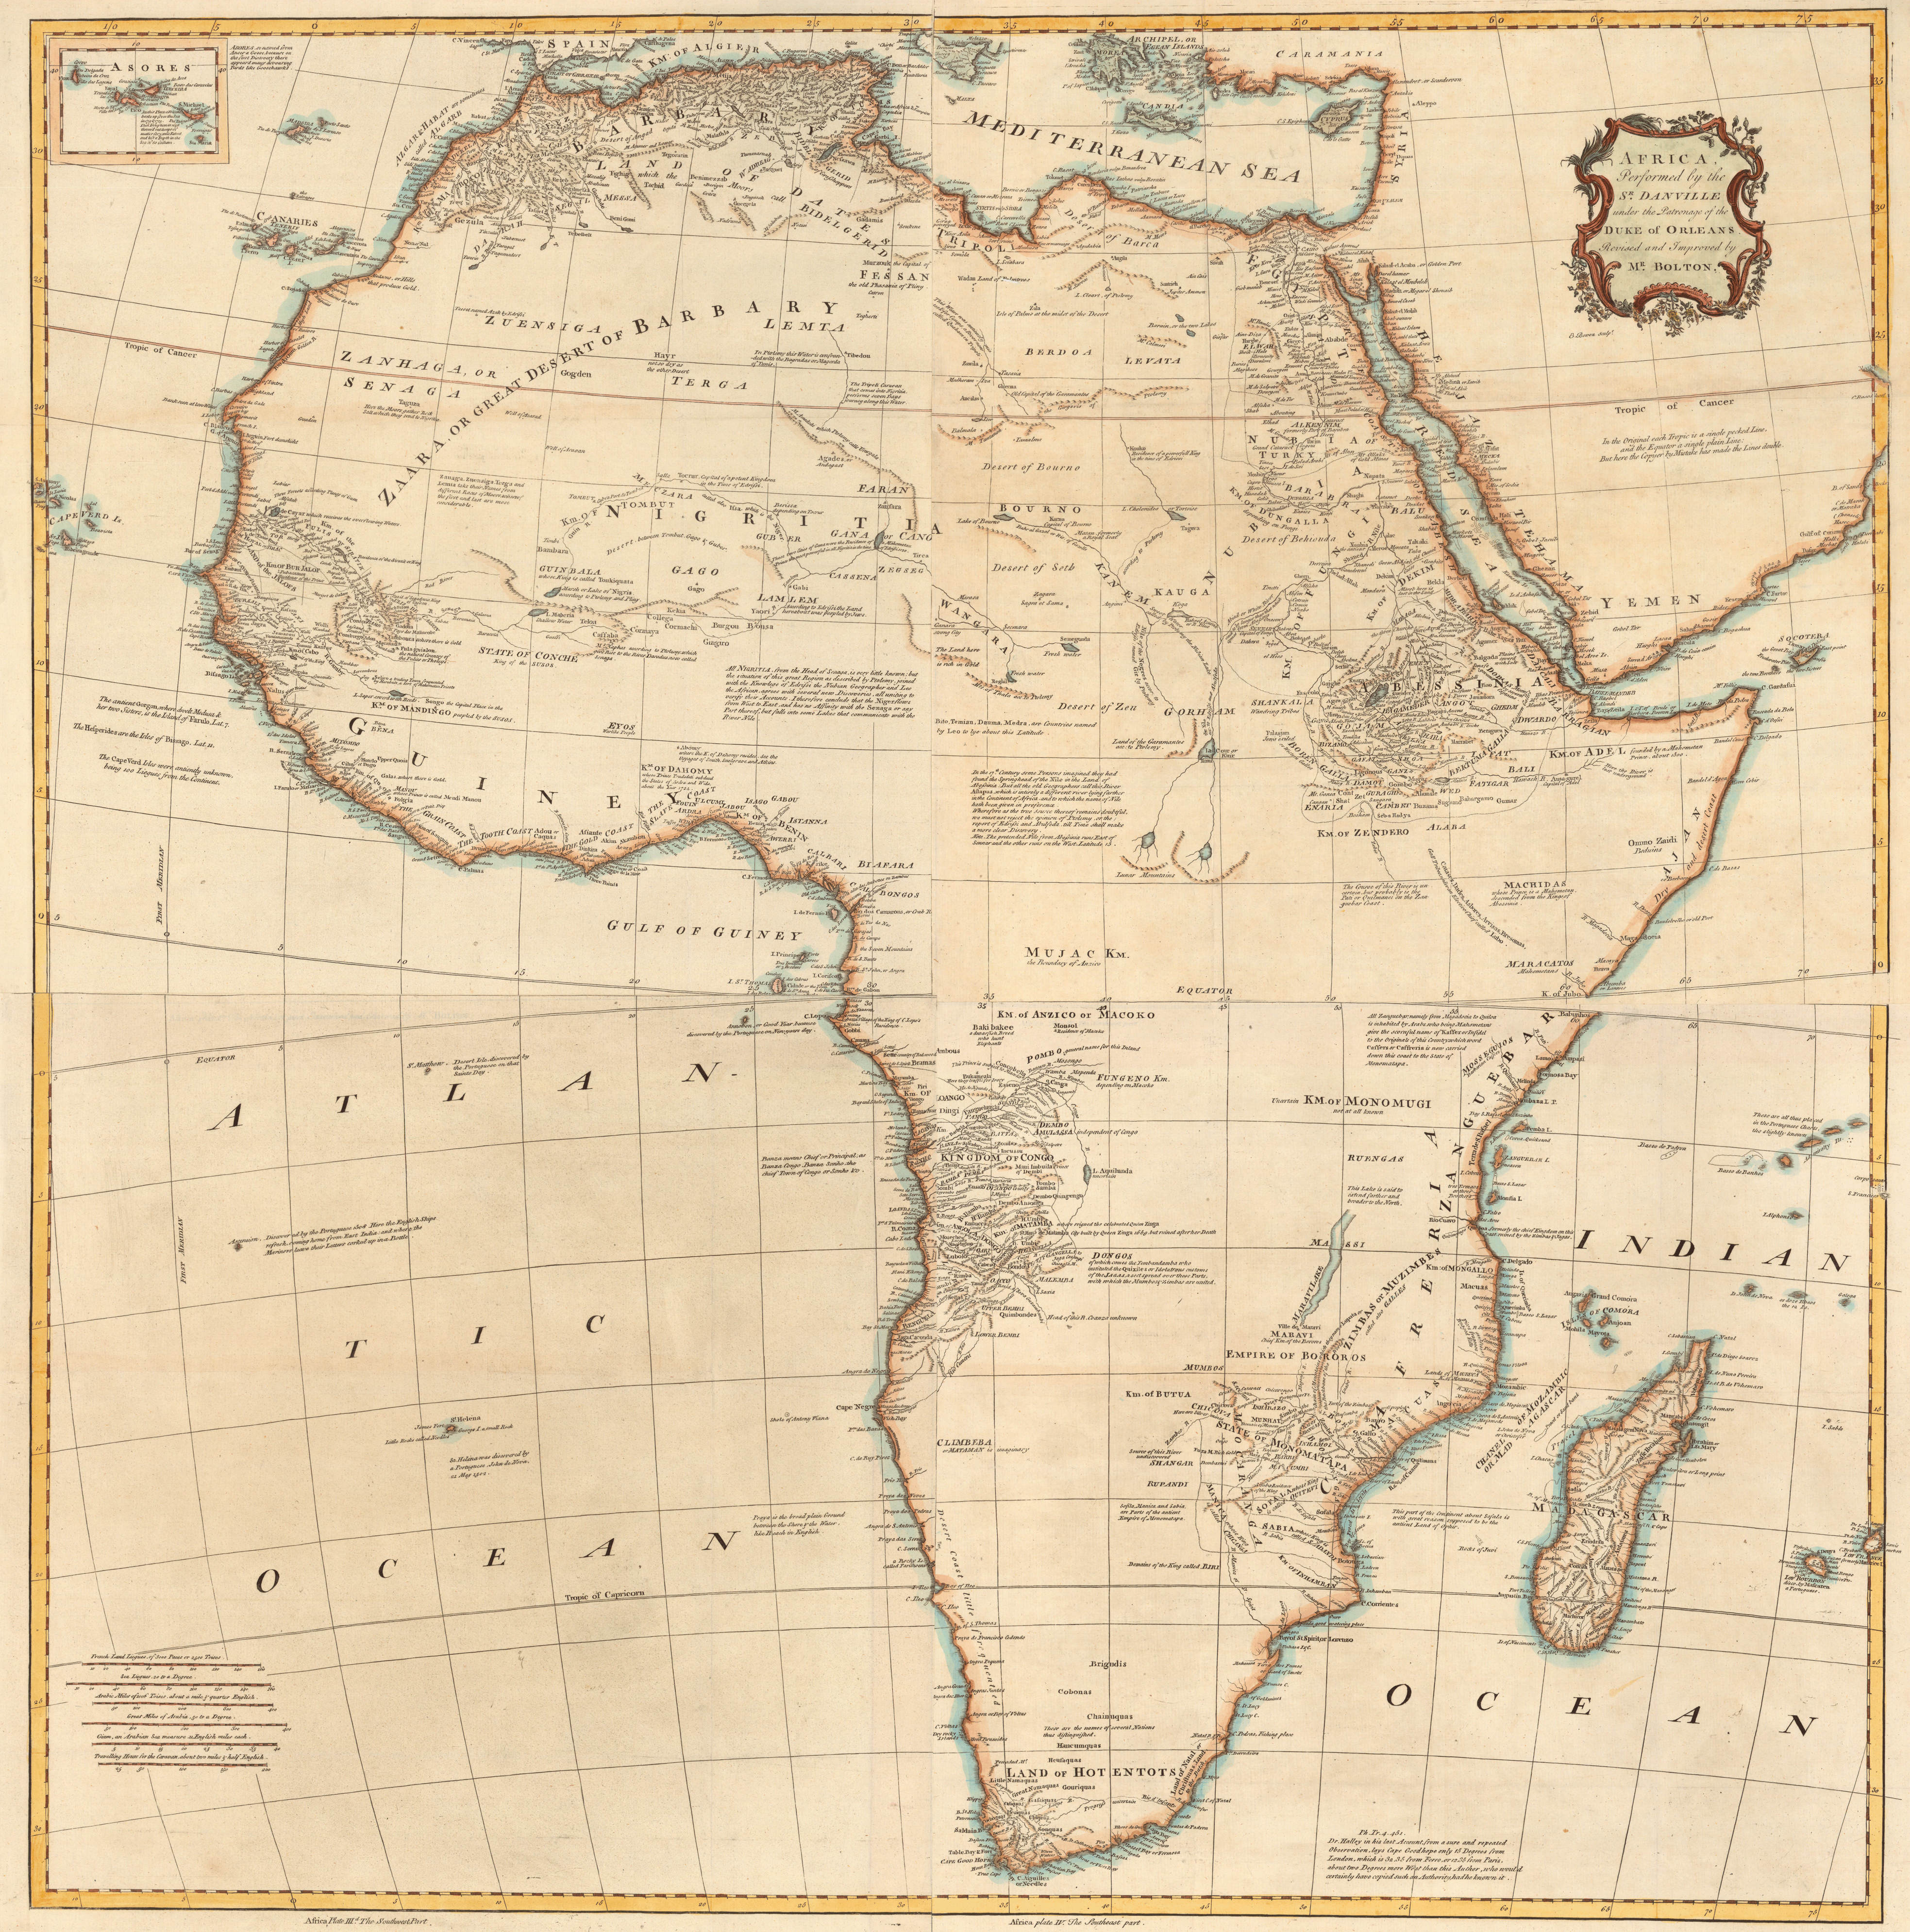 """1766: French Map Shows Negroland As """"Poted By Jews ... on map of ethiopia in french, map of african countries, map of france in french, us map in french, map of european countries in french, map colonial africa, map of madagascar in french, map of belgium in french, map of switzerland in french, map of casablanca in french, south america map in french, map of french speaking countries, map of caribbean in french, nutrition label in french, map of world in french, map of north america in french, map of canada in french, map of seychelles in french, map of central america in french, united states map in french,"""